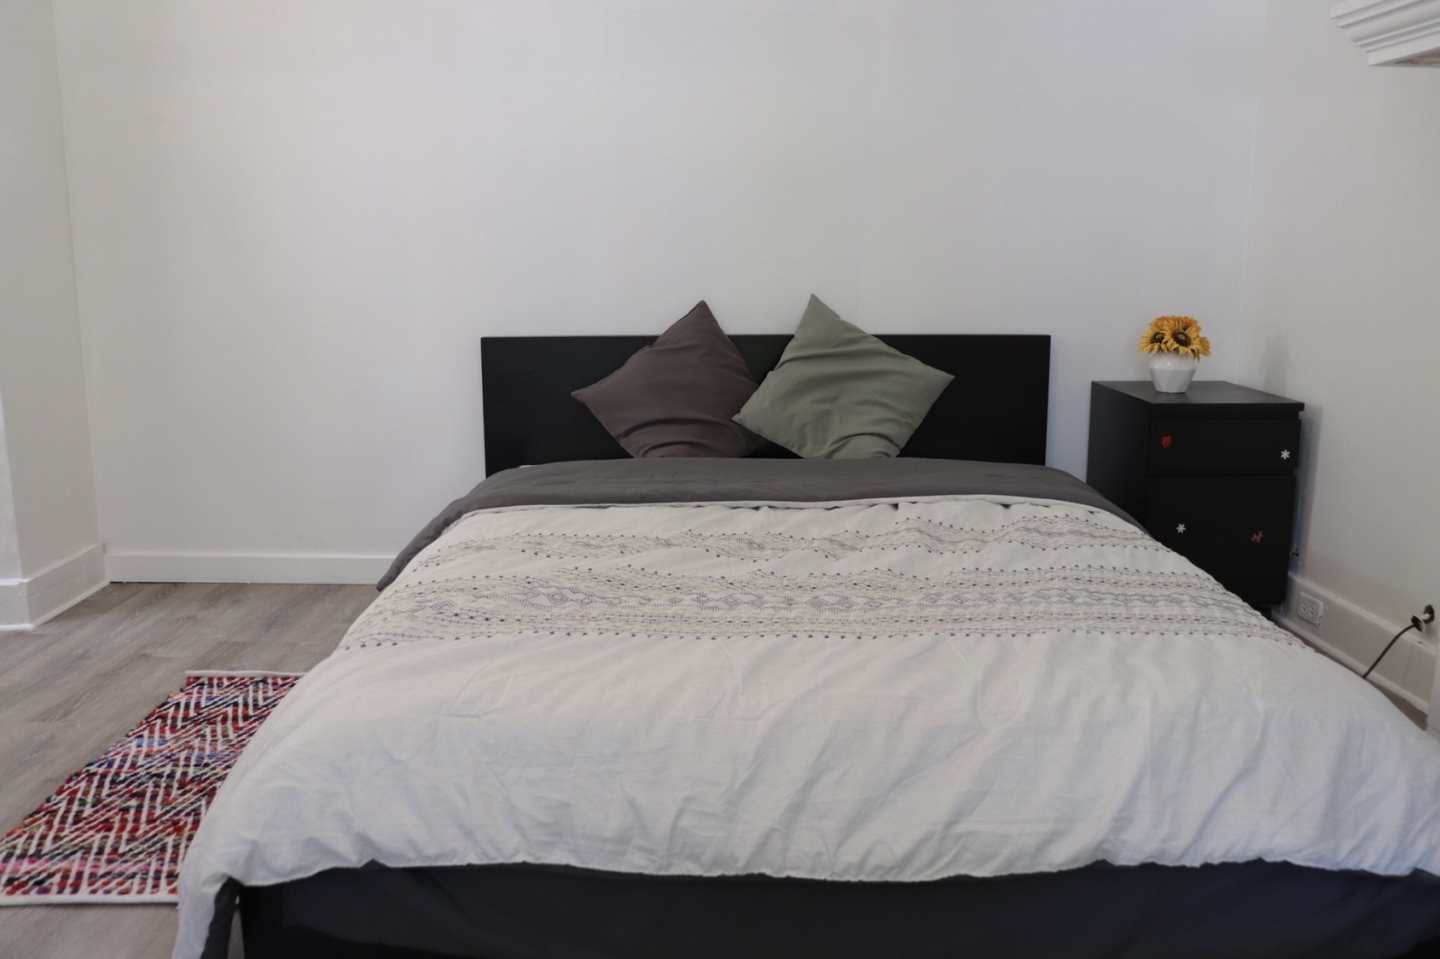 clean room, small bed with black bed frame